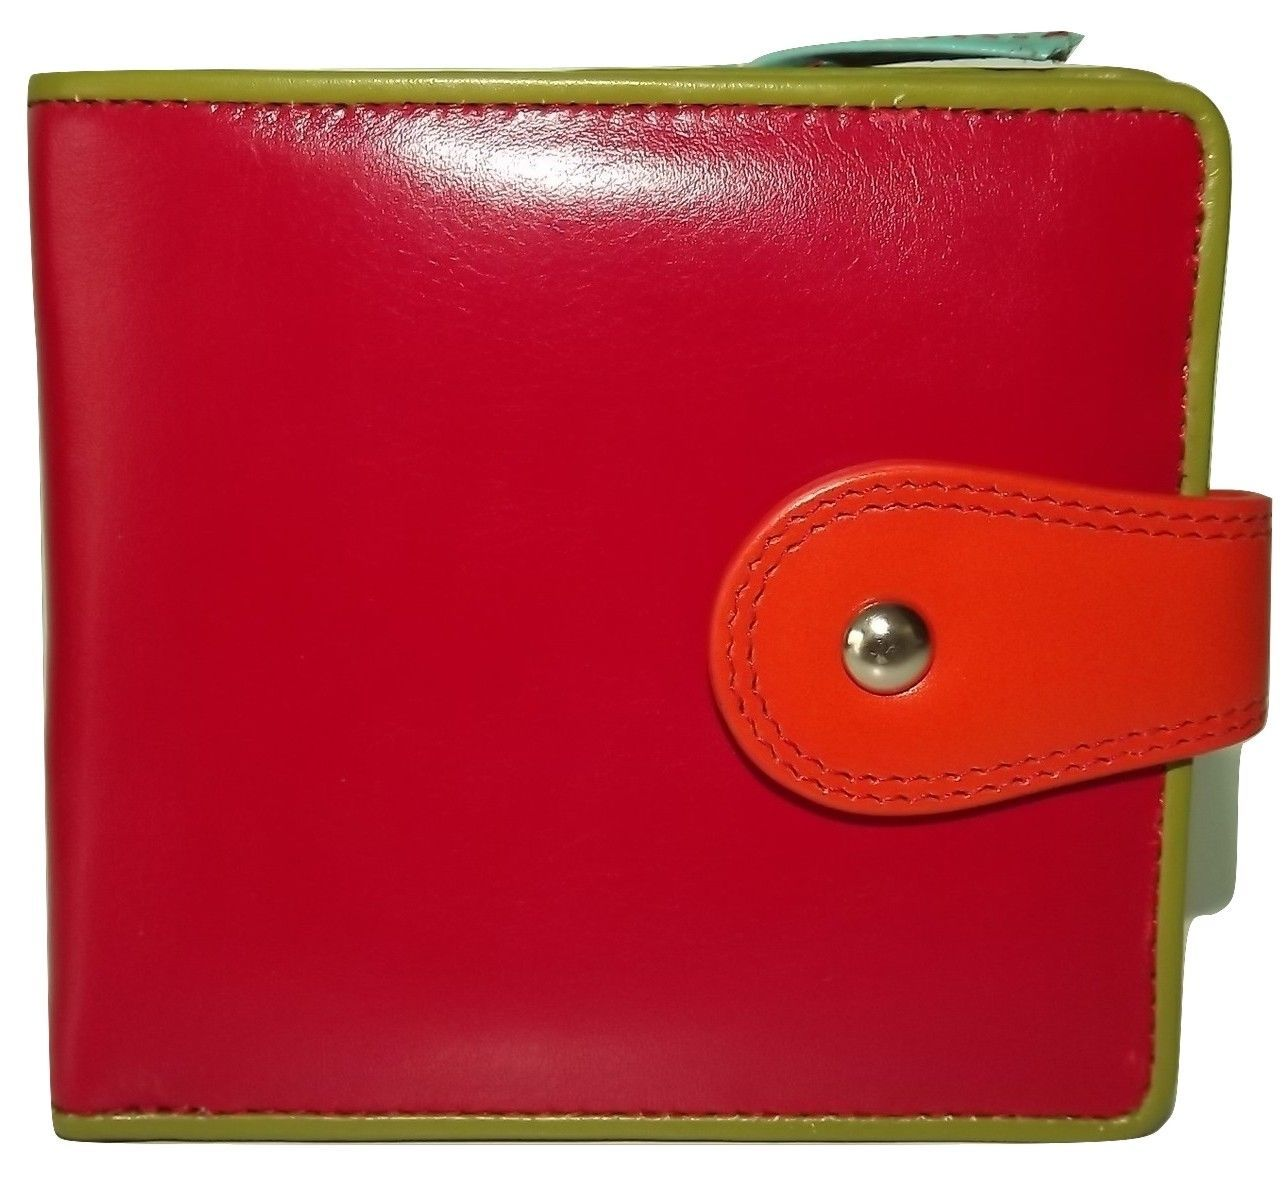 Primary image for NEW ITALIE LEATHER WOMEN'S CREDIT CARD WALLET WITH CHANGE POCKET RED/MULTI